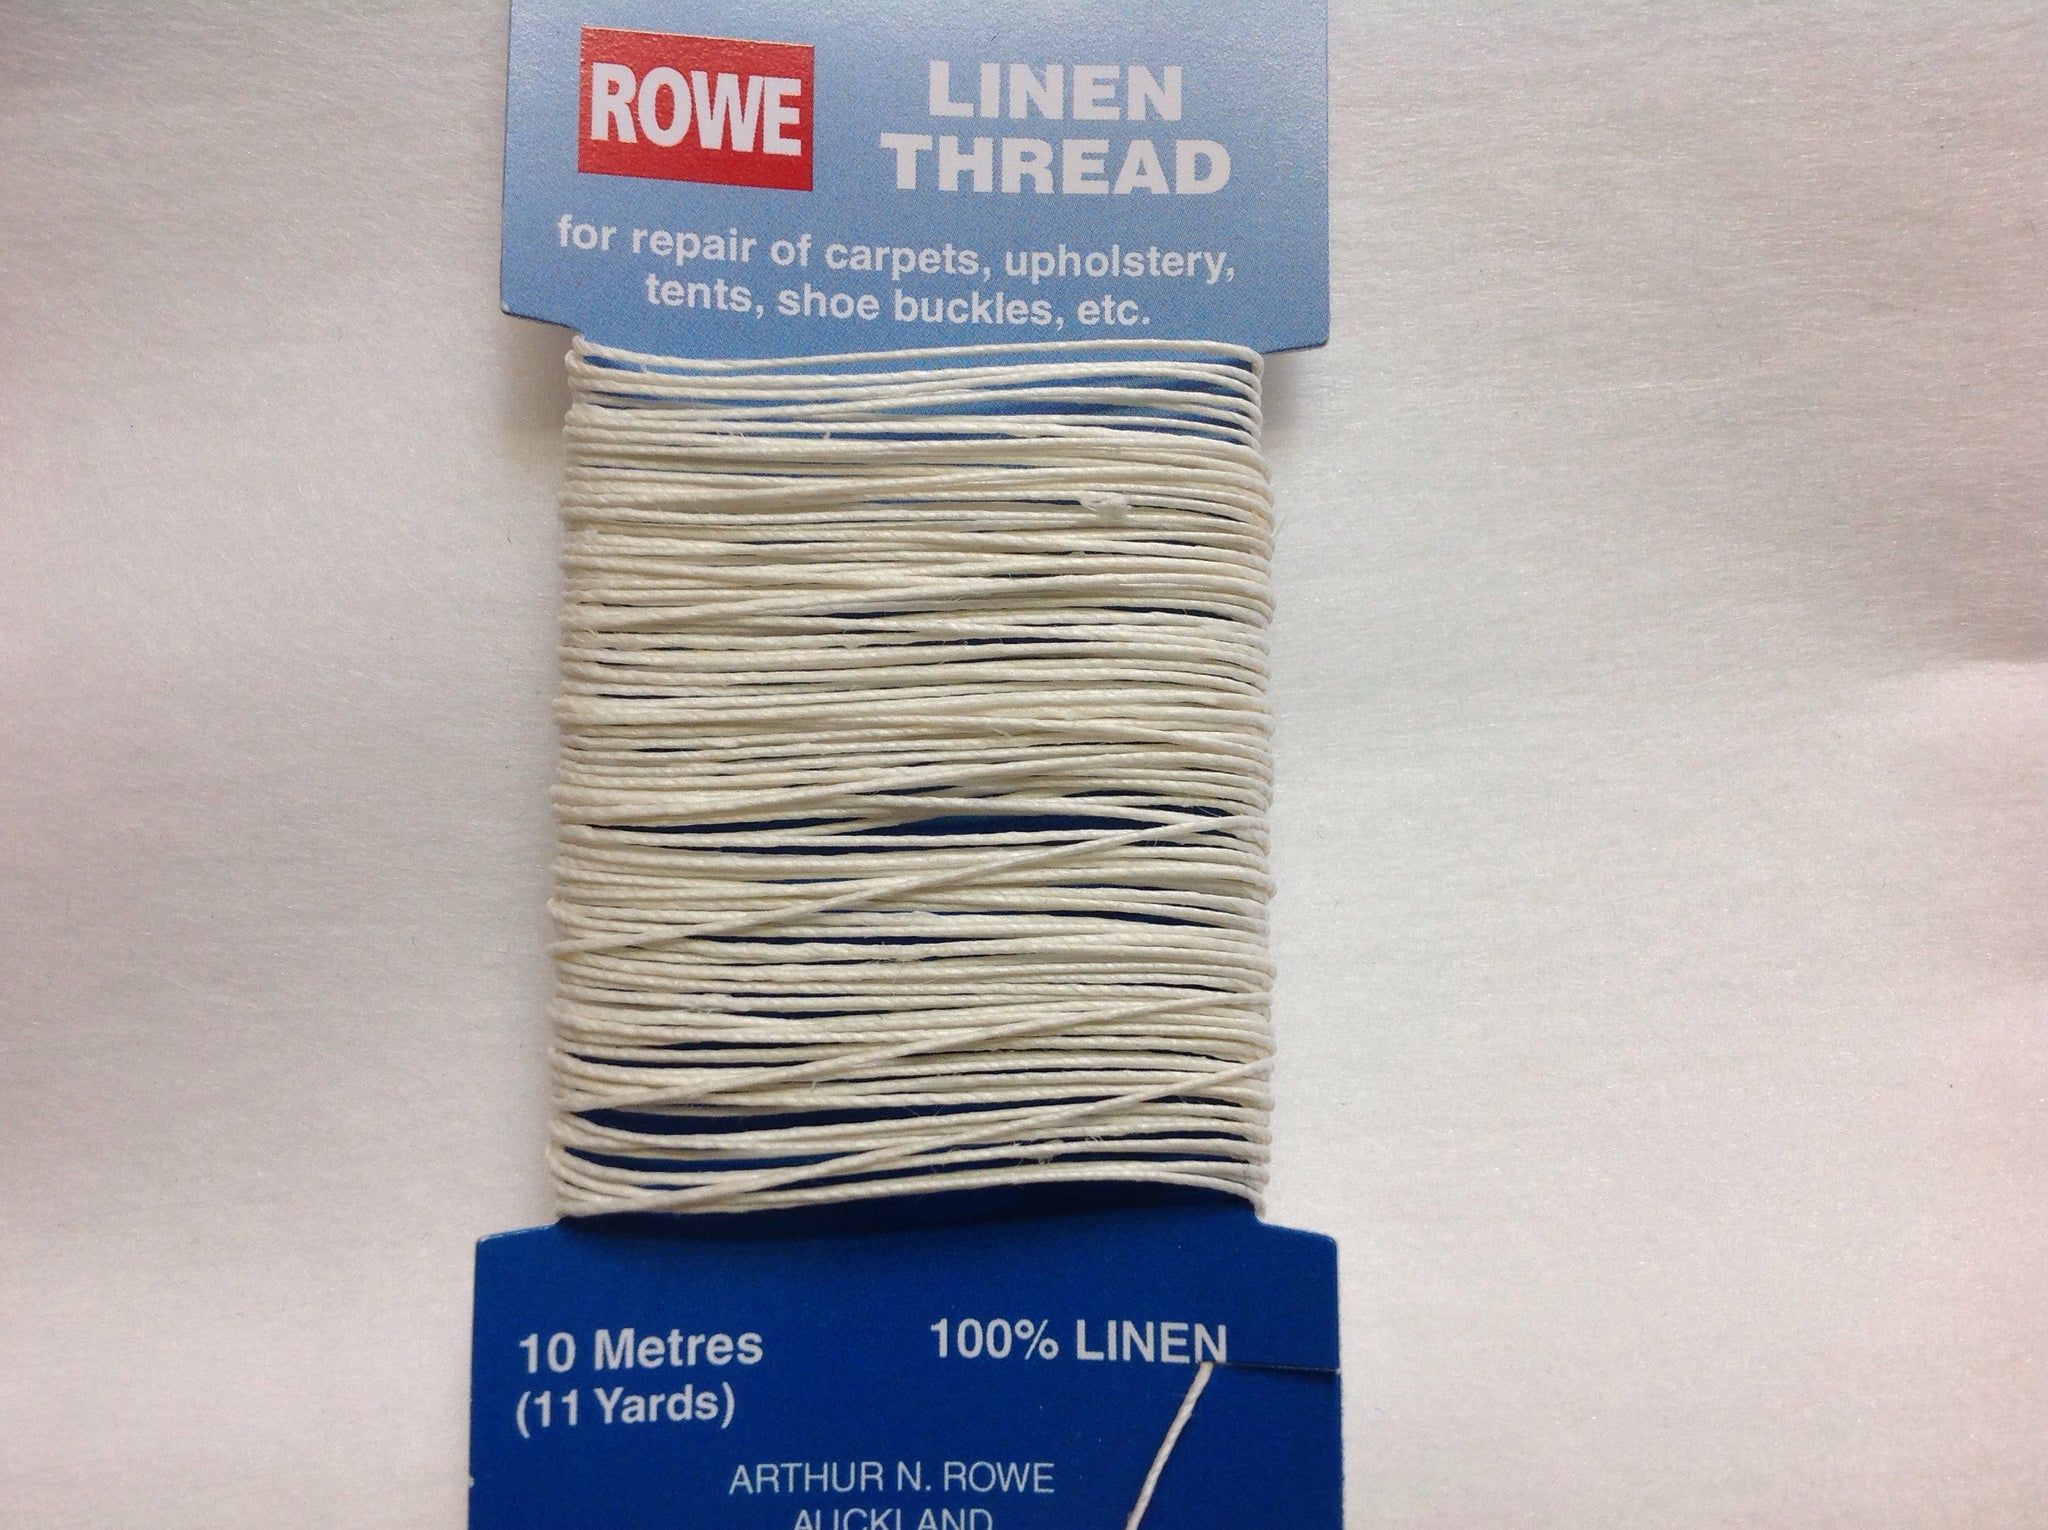 Linen Thread - Rowe